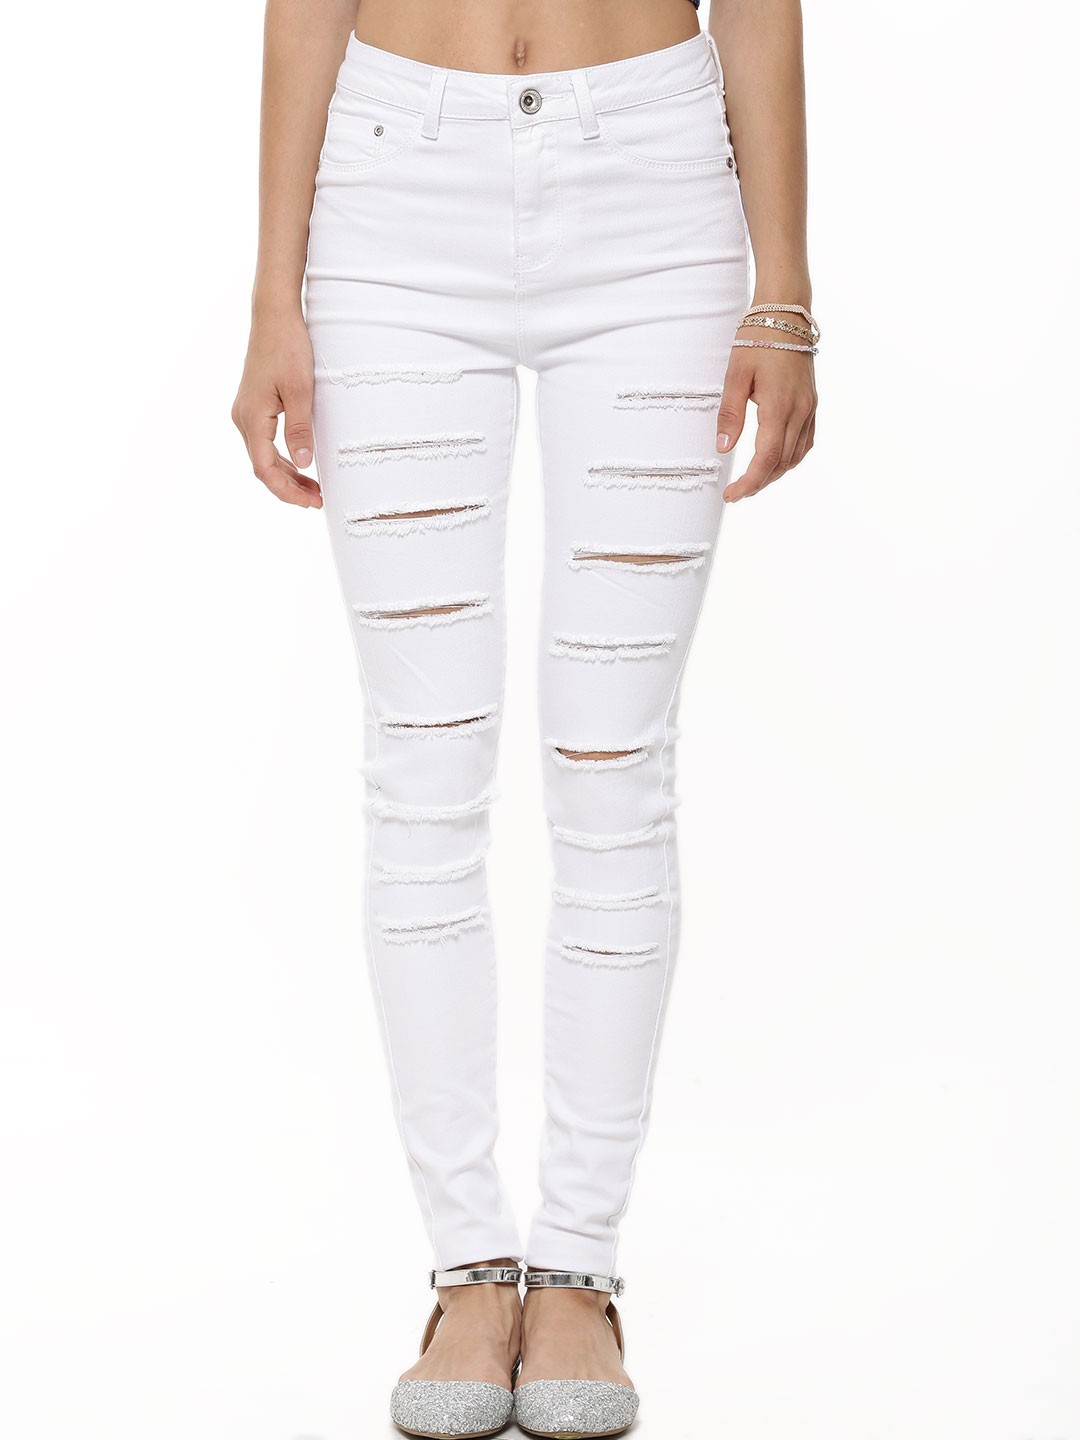 buy new look extreme rip skinny jean for women women 39 s white skinny jeans online in india. Black Bedroom Furniture Sets. Home Design Ideas